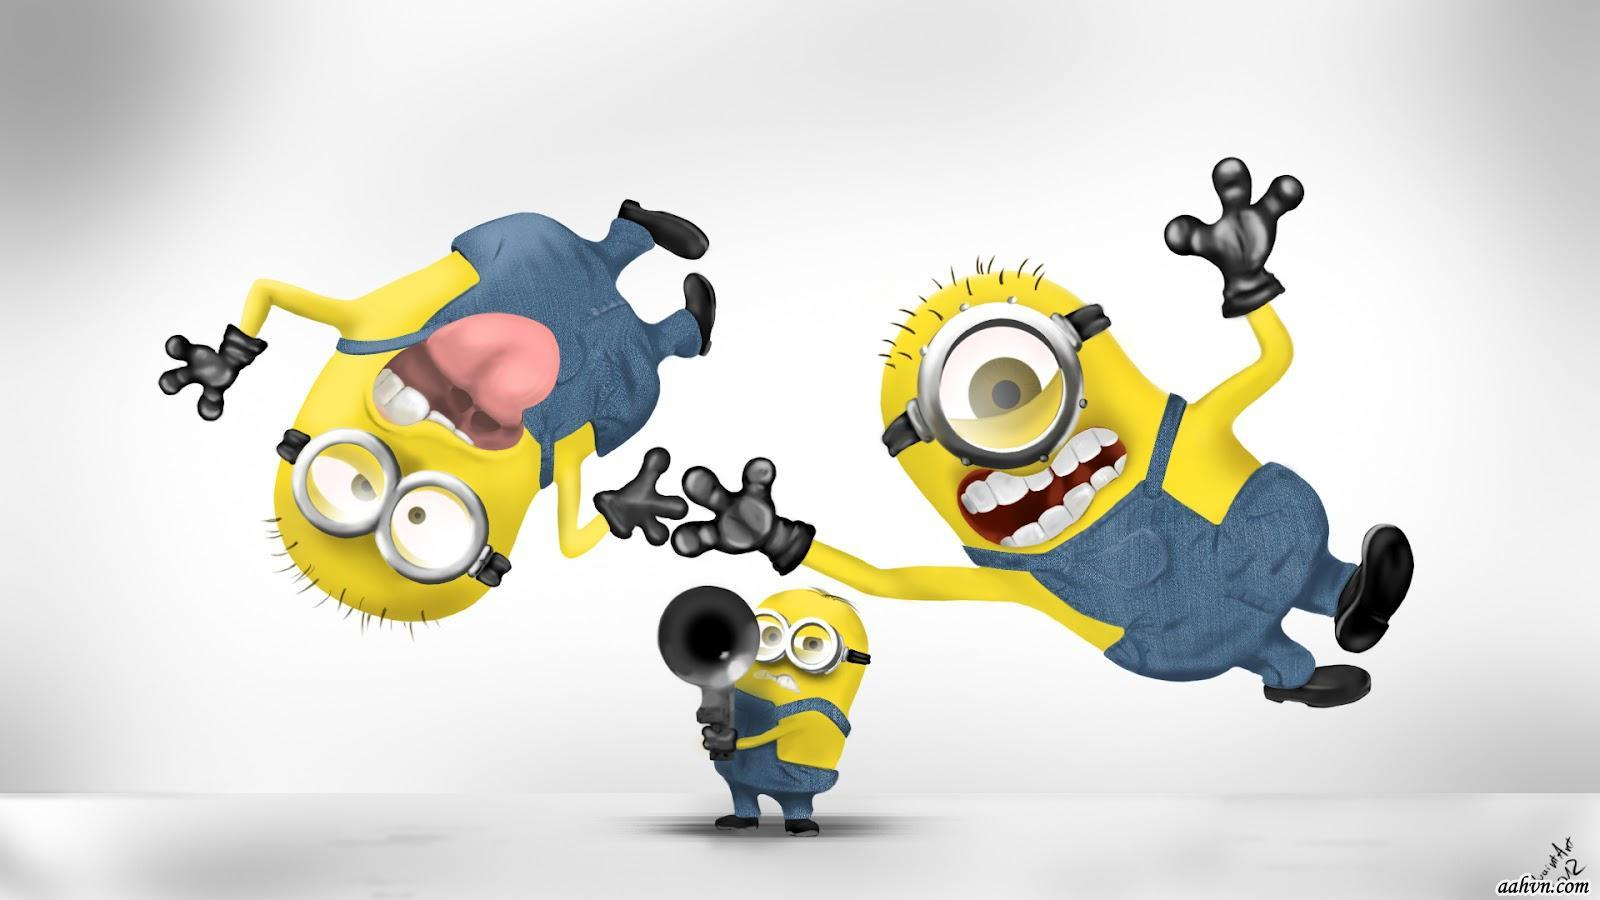 minions wallpapers - wallpaper cave